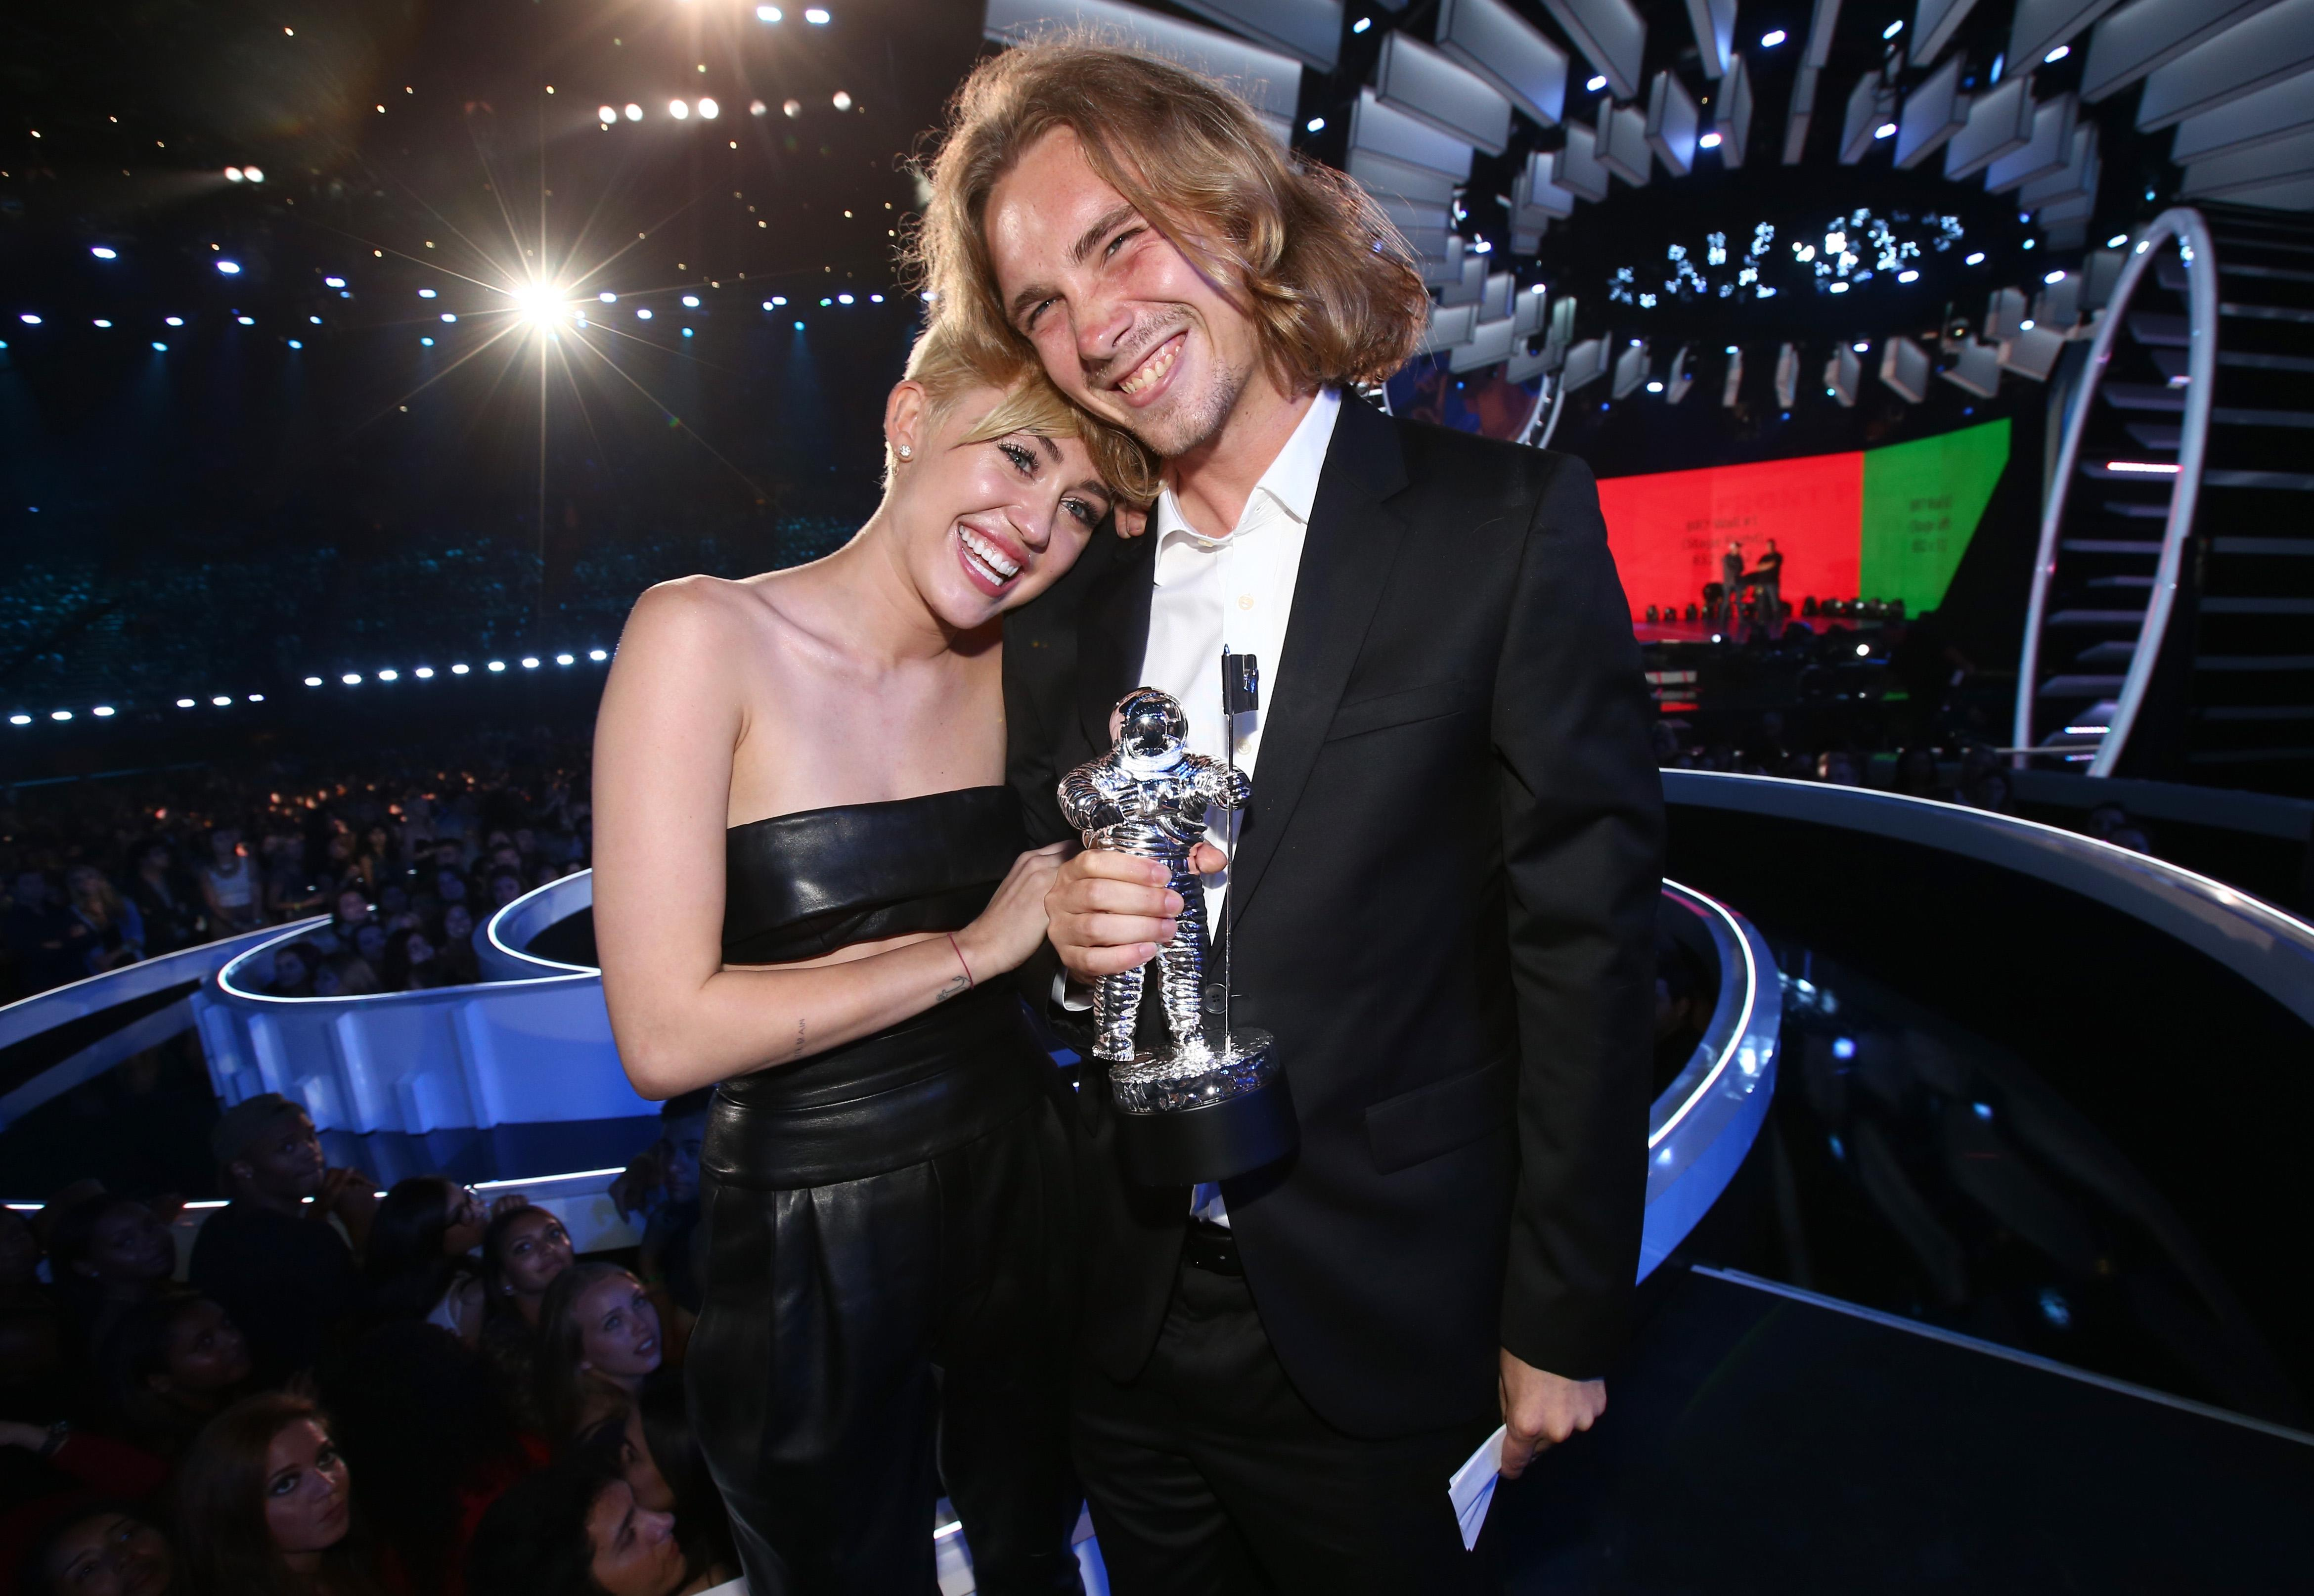 Miley Cyrus attends the 2014 MTV Video Music Awards with a homeless youth.